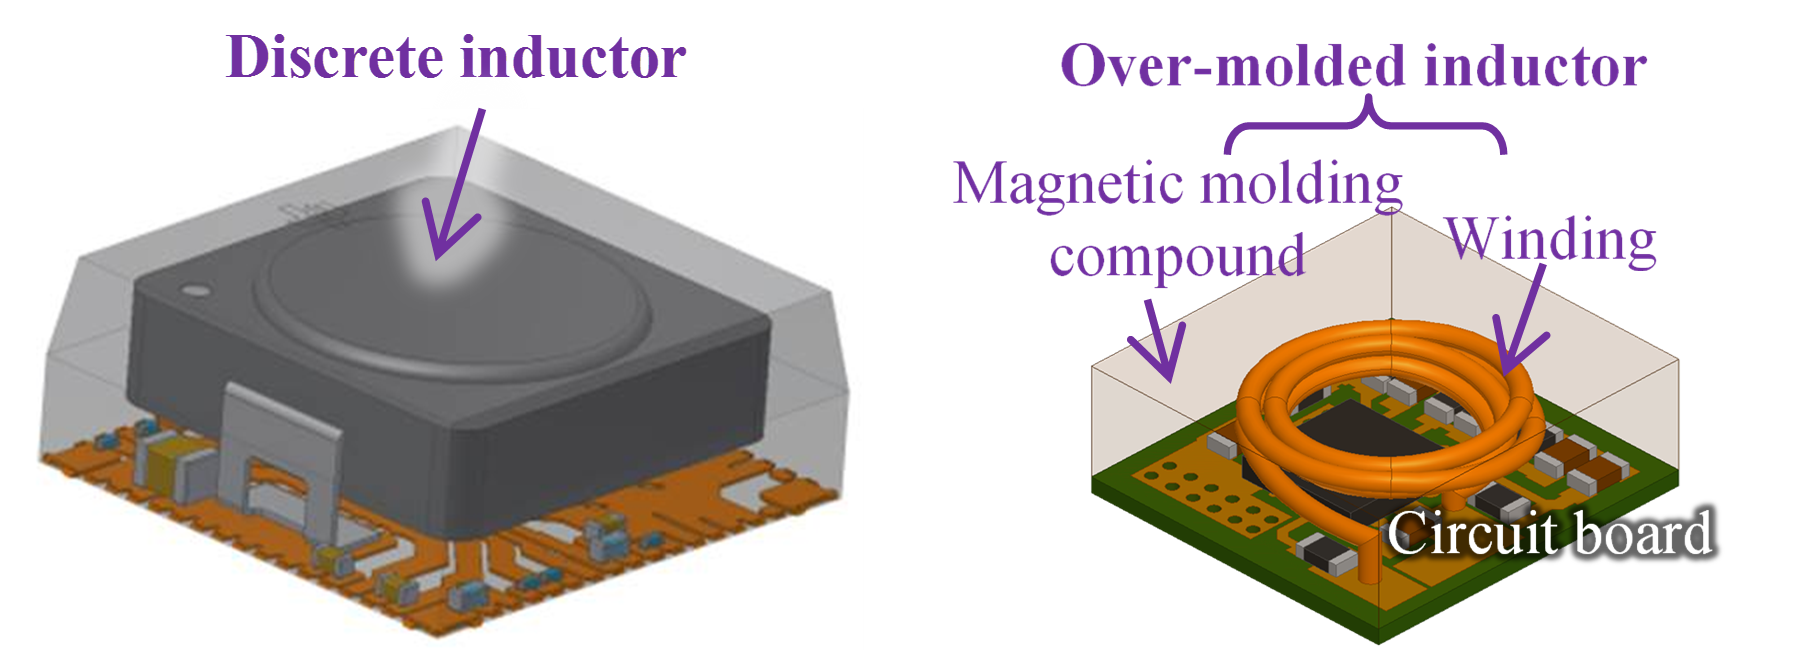 3-D models of discrete inductor on a PCB